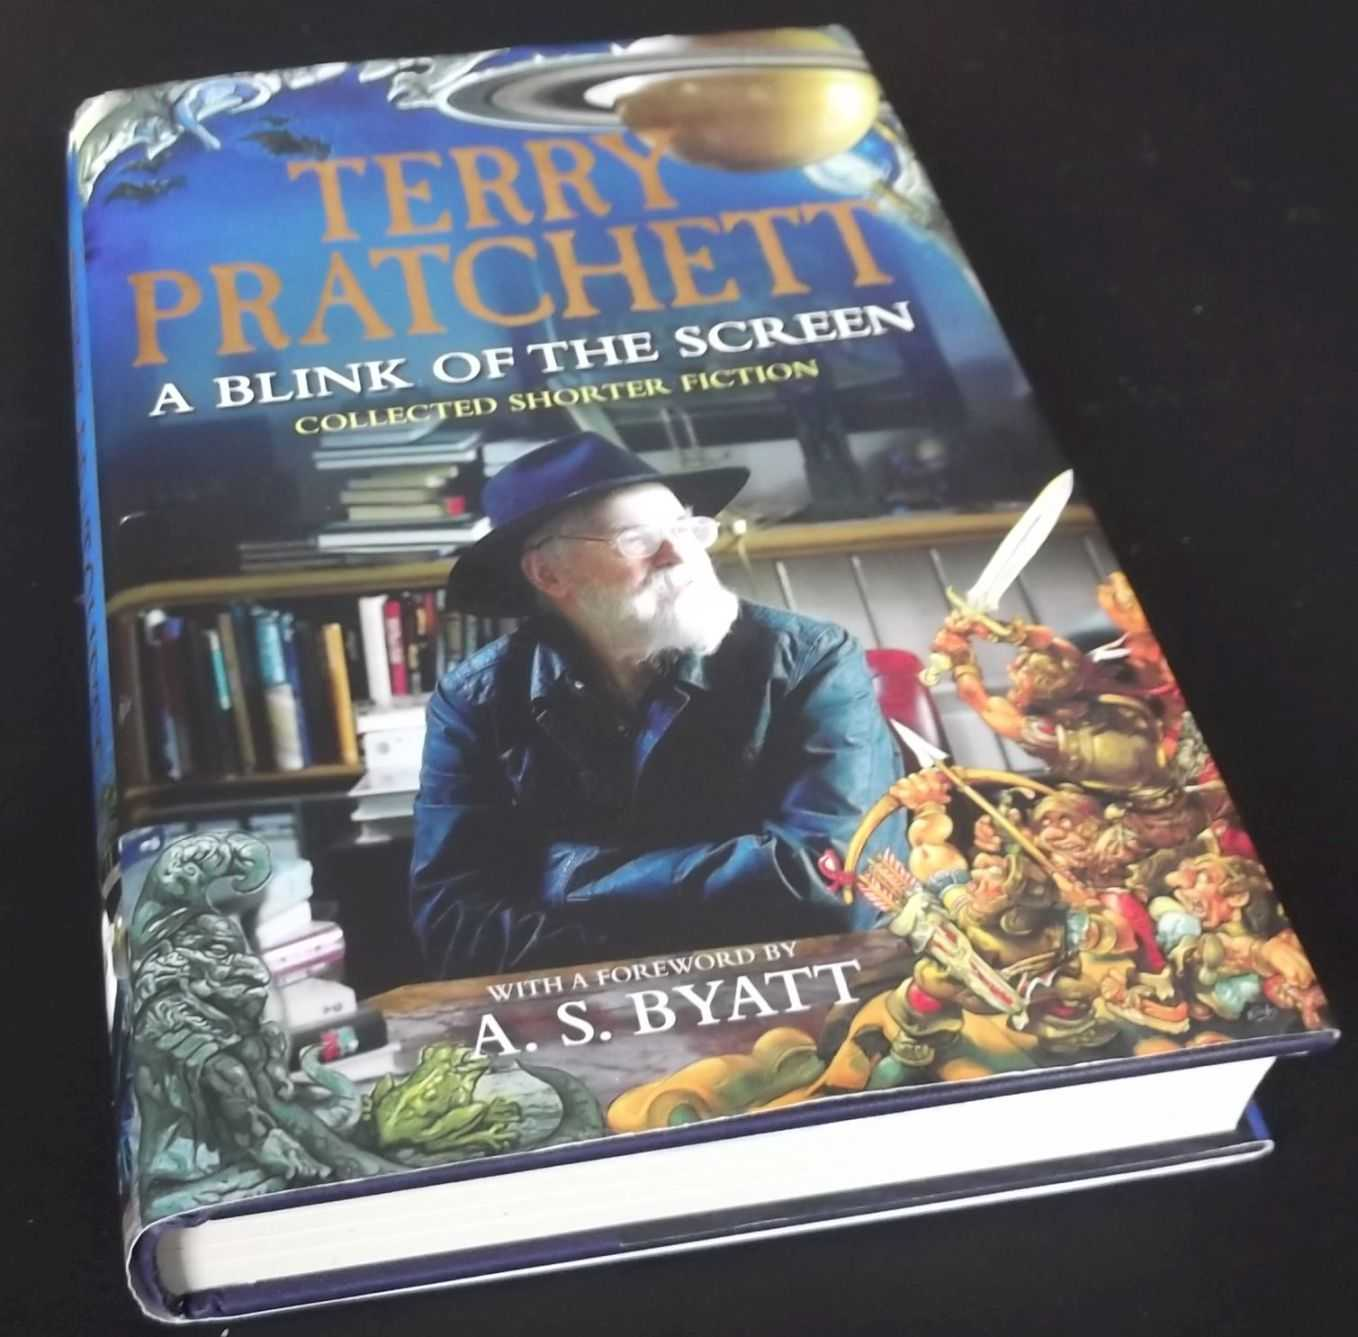 TERRY PRATCHETT - A Blink of the Screen: Collected Short Fiction